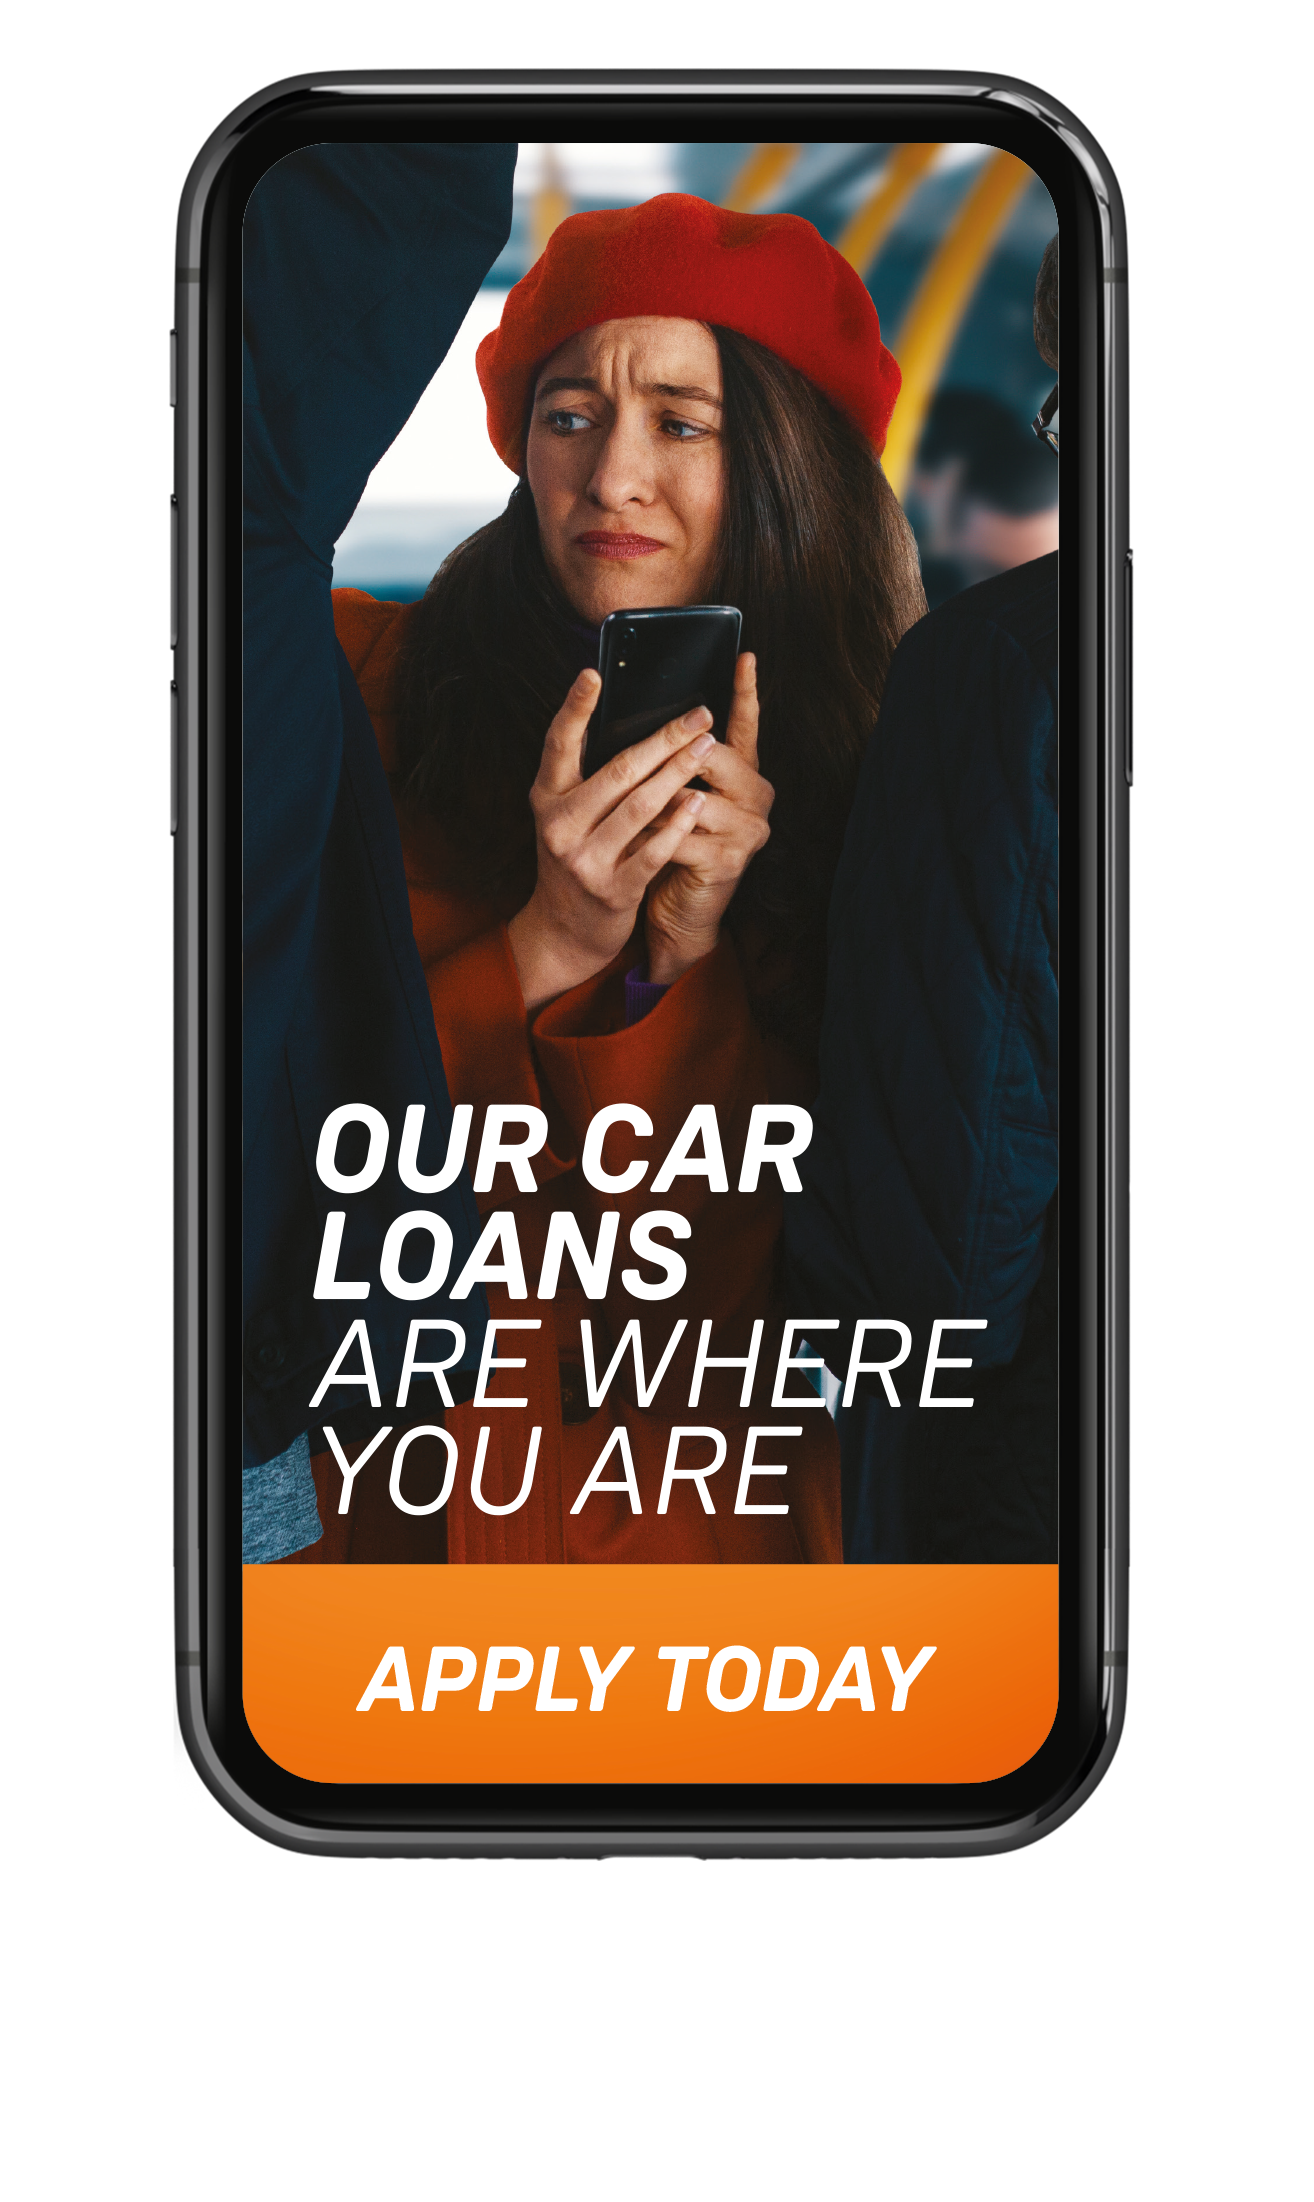 OUR CAR LOANS ARE WHERE YOU ARE